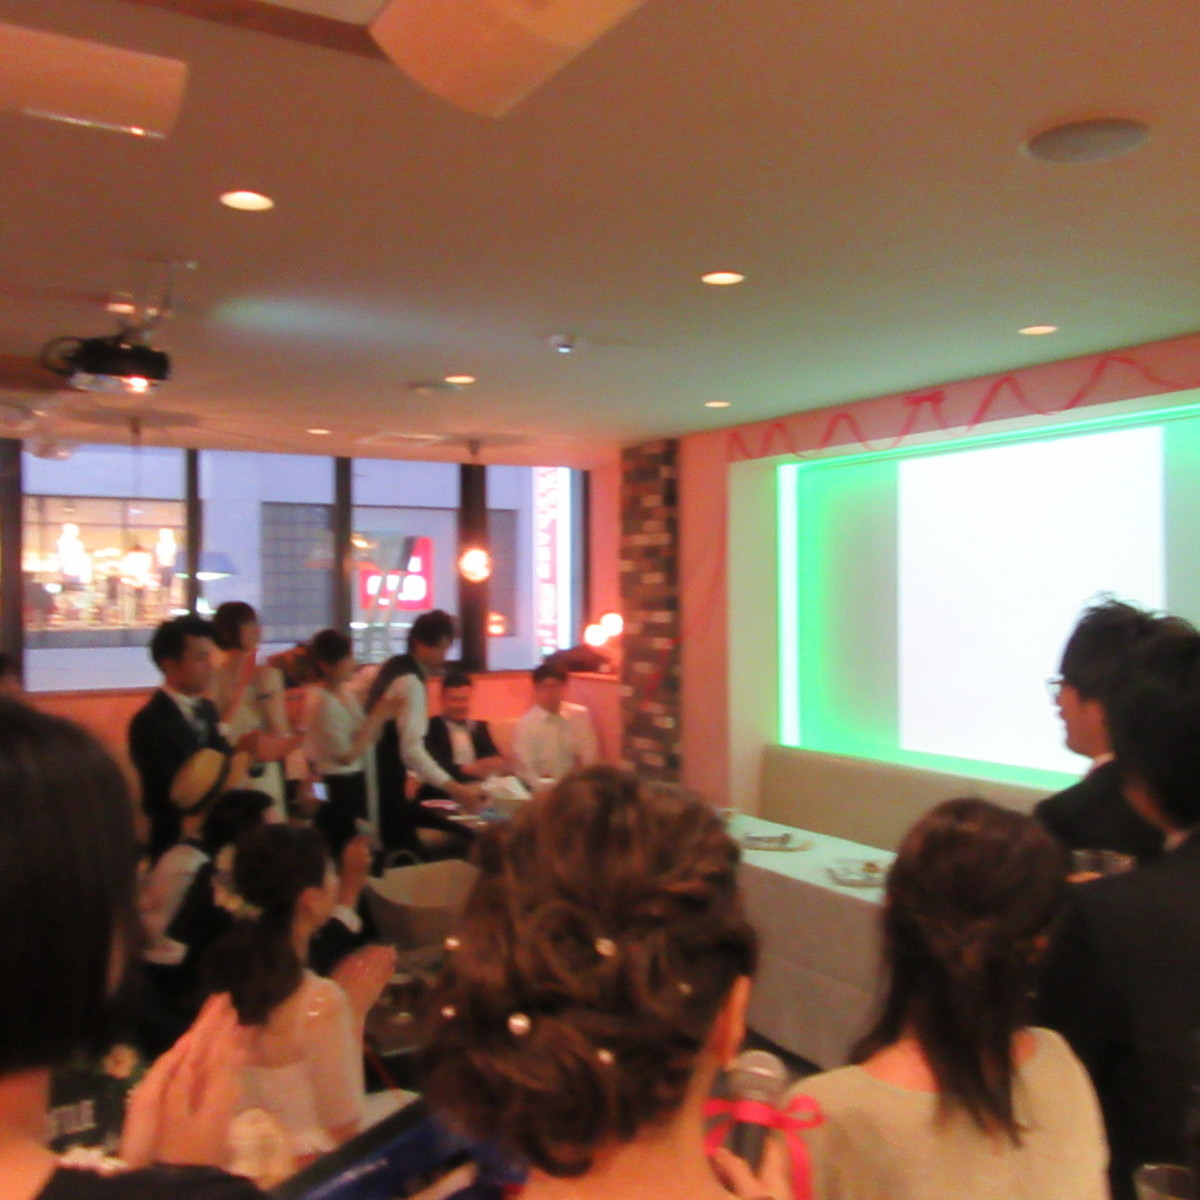 Ultra-large 110 inches projector and audio equipment is also popular to free lending! Surprise directing ♪